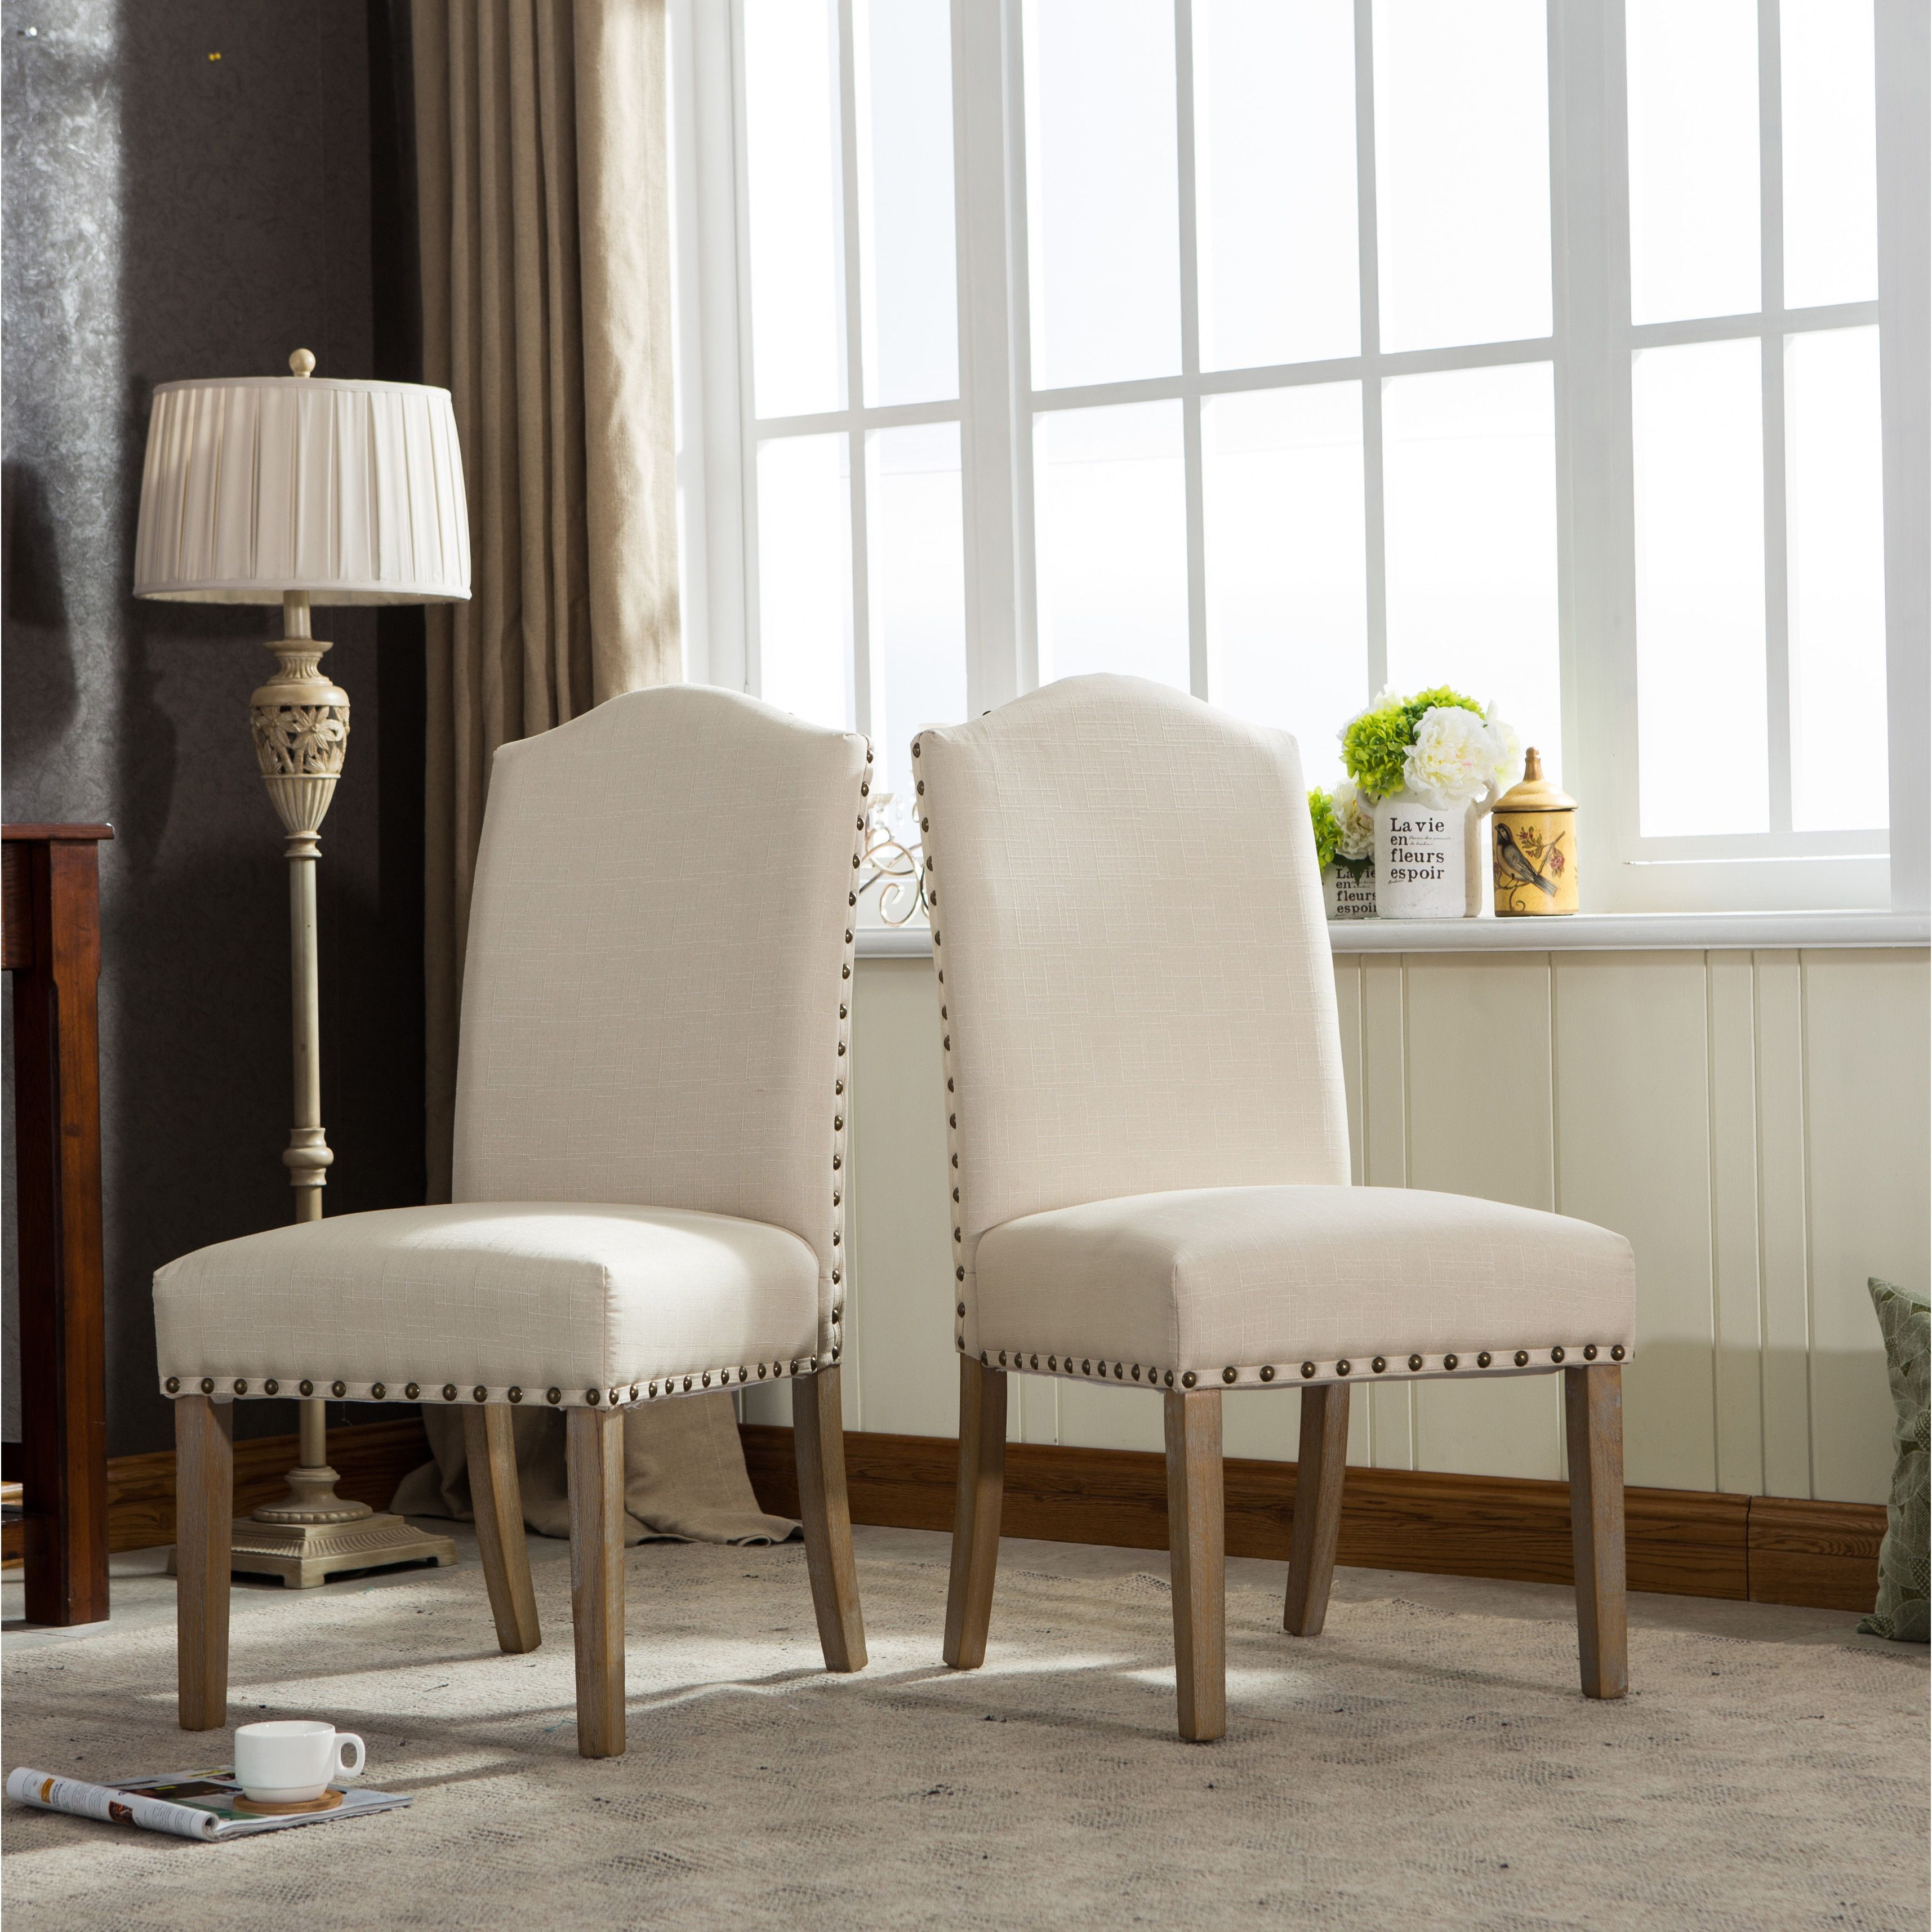 Mod Urban Solid Wood Upholstered Parson Chairs